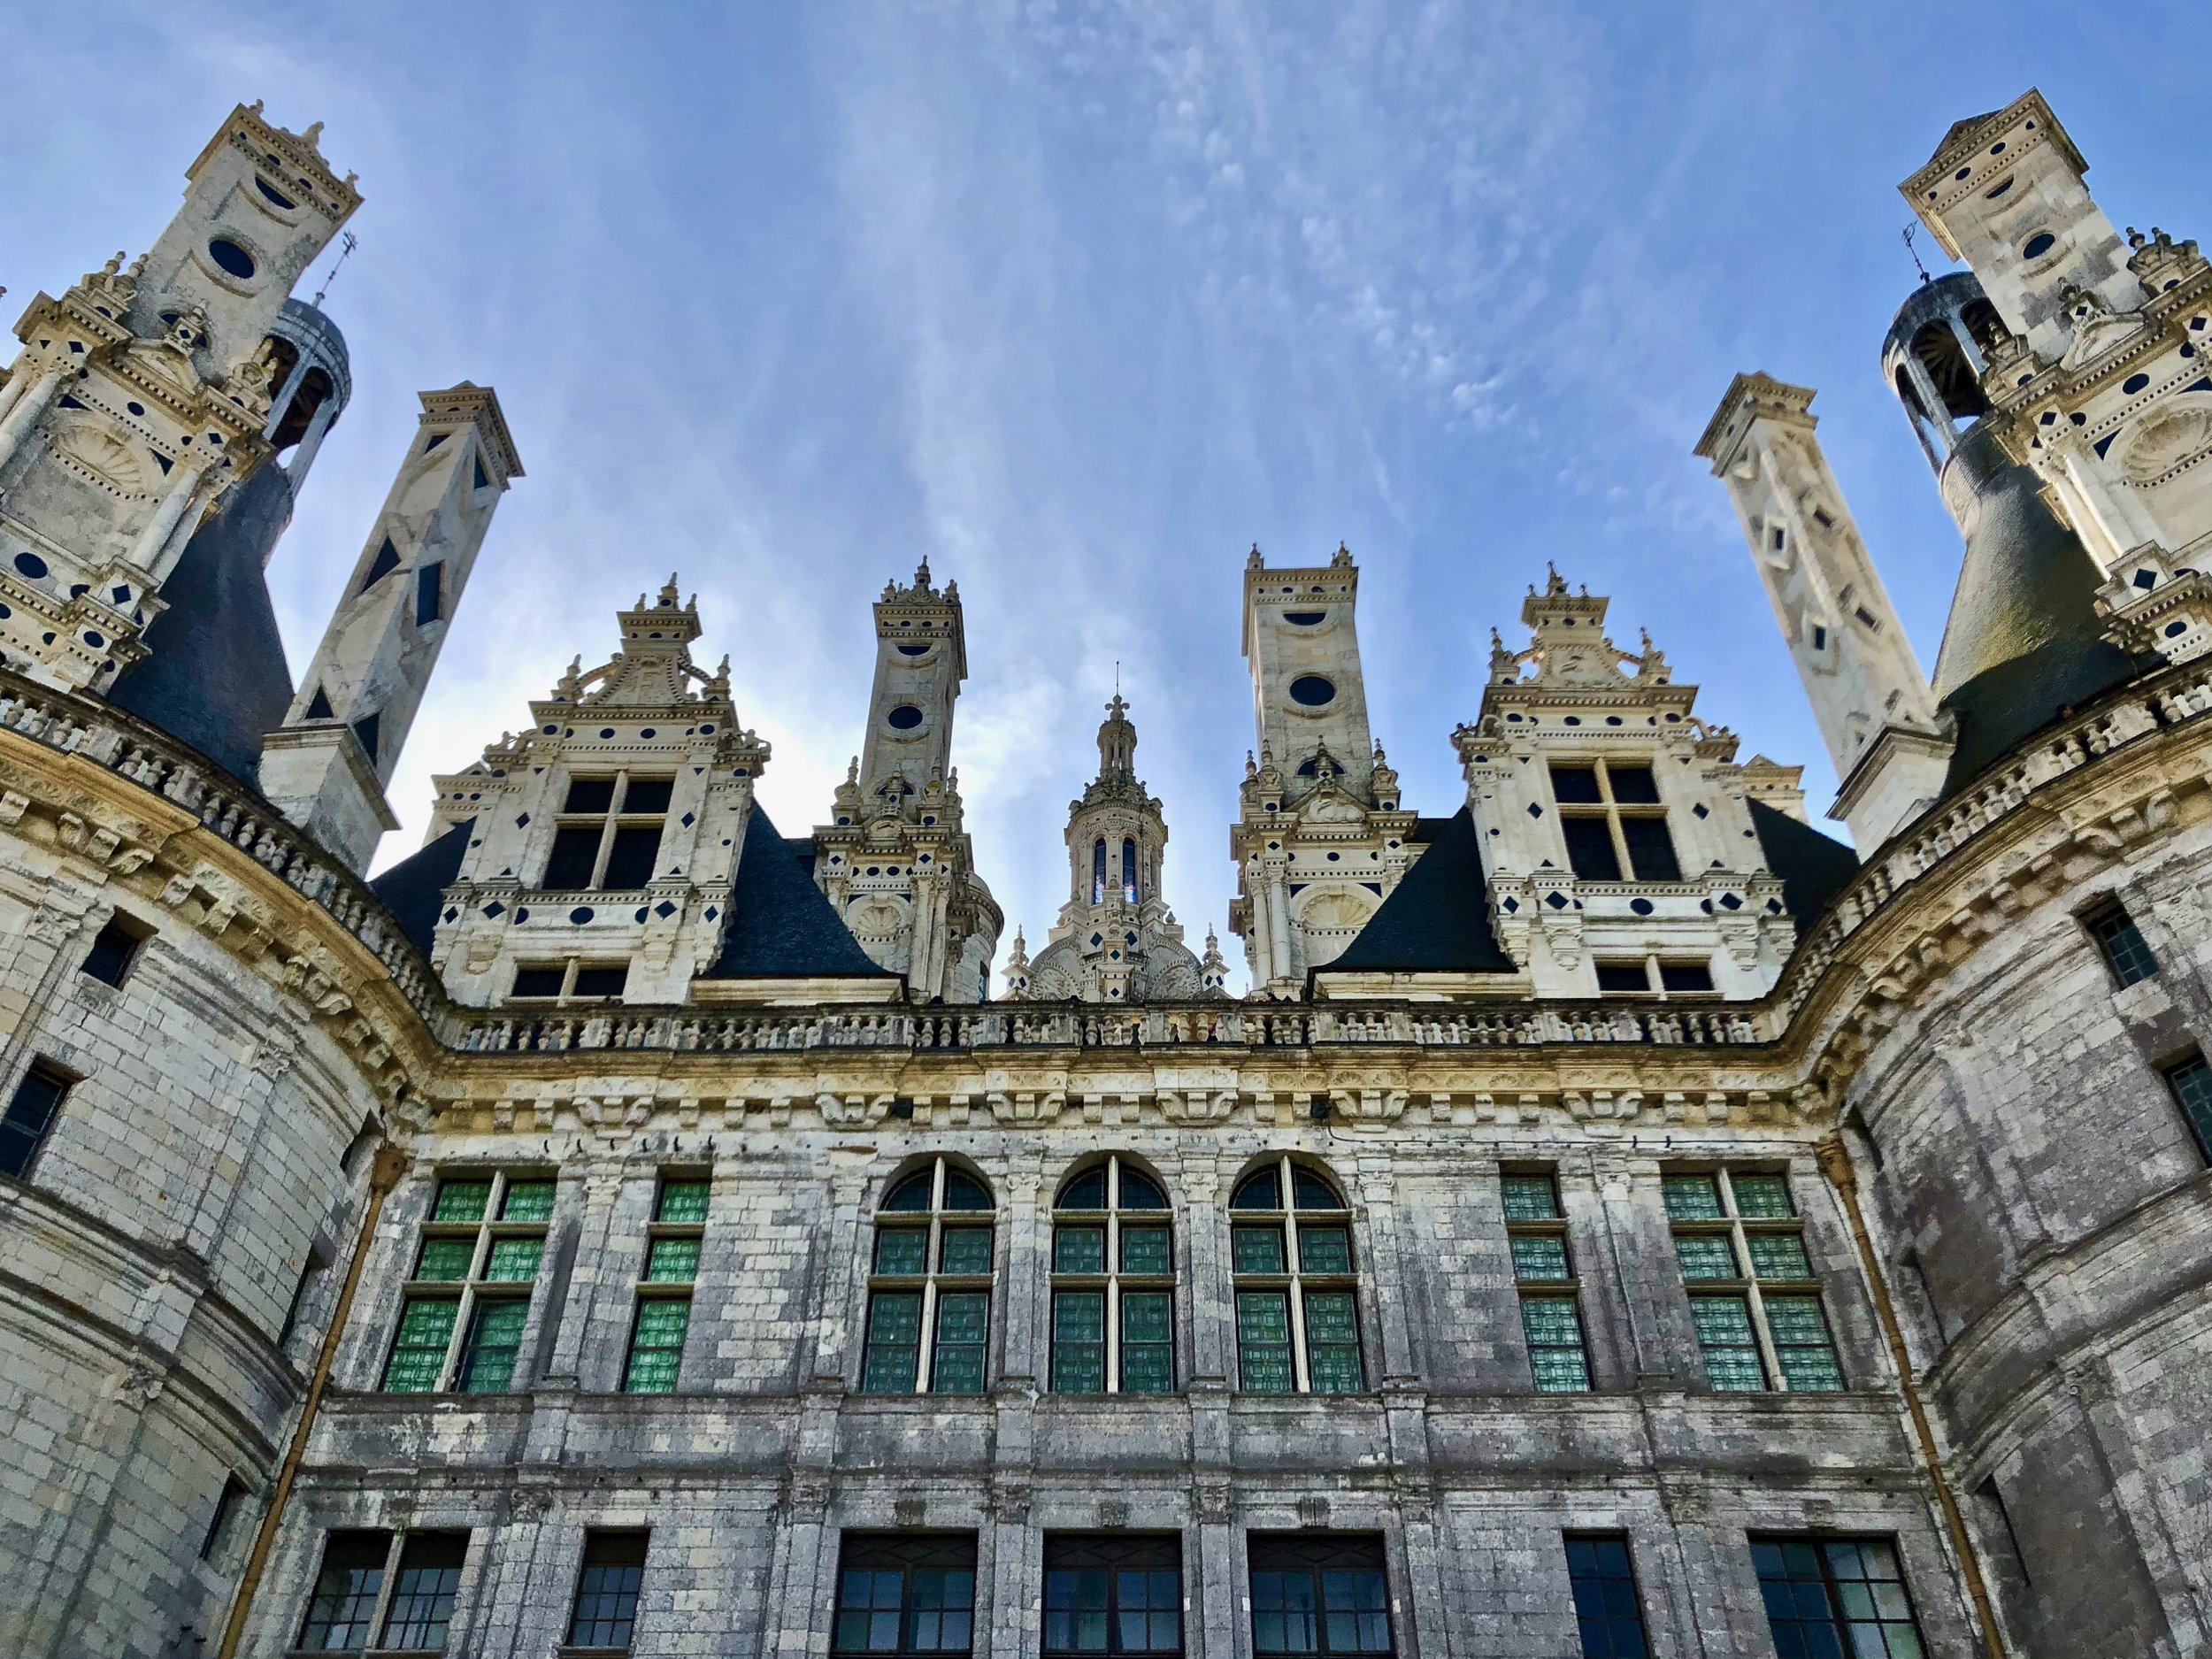 Chateau De Chambord French Castle That Inspired Disney S Beauty And The Beast Sarah Freia